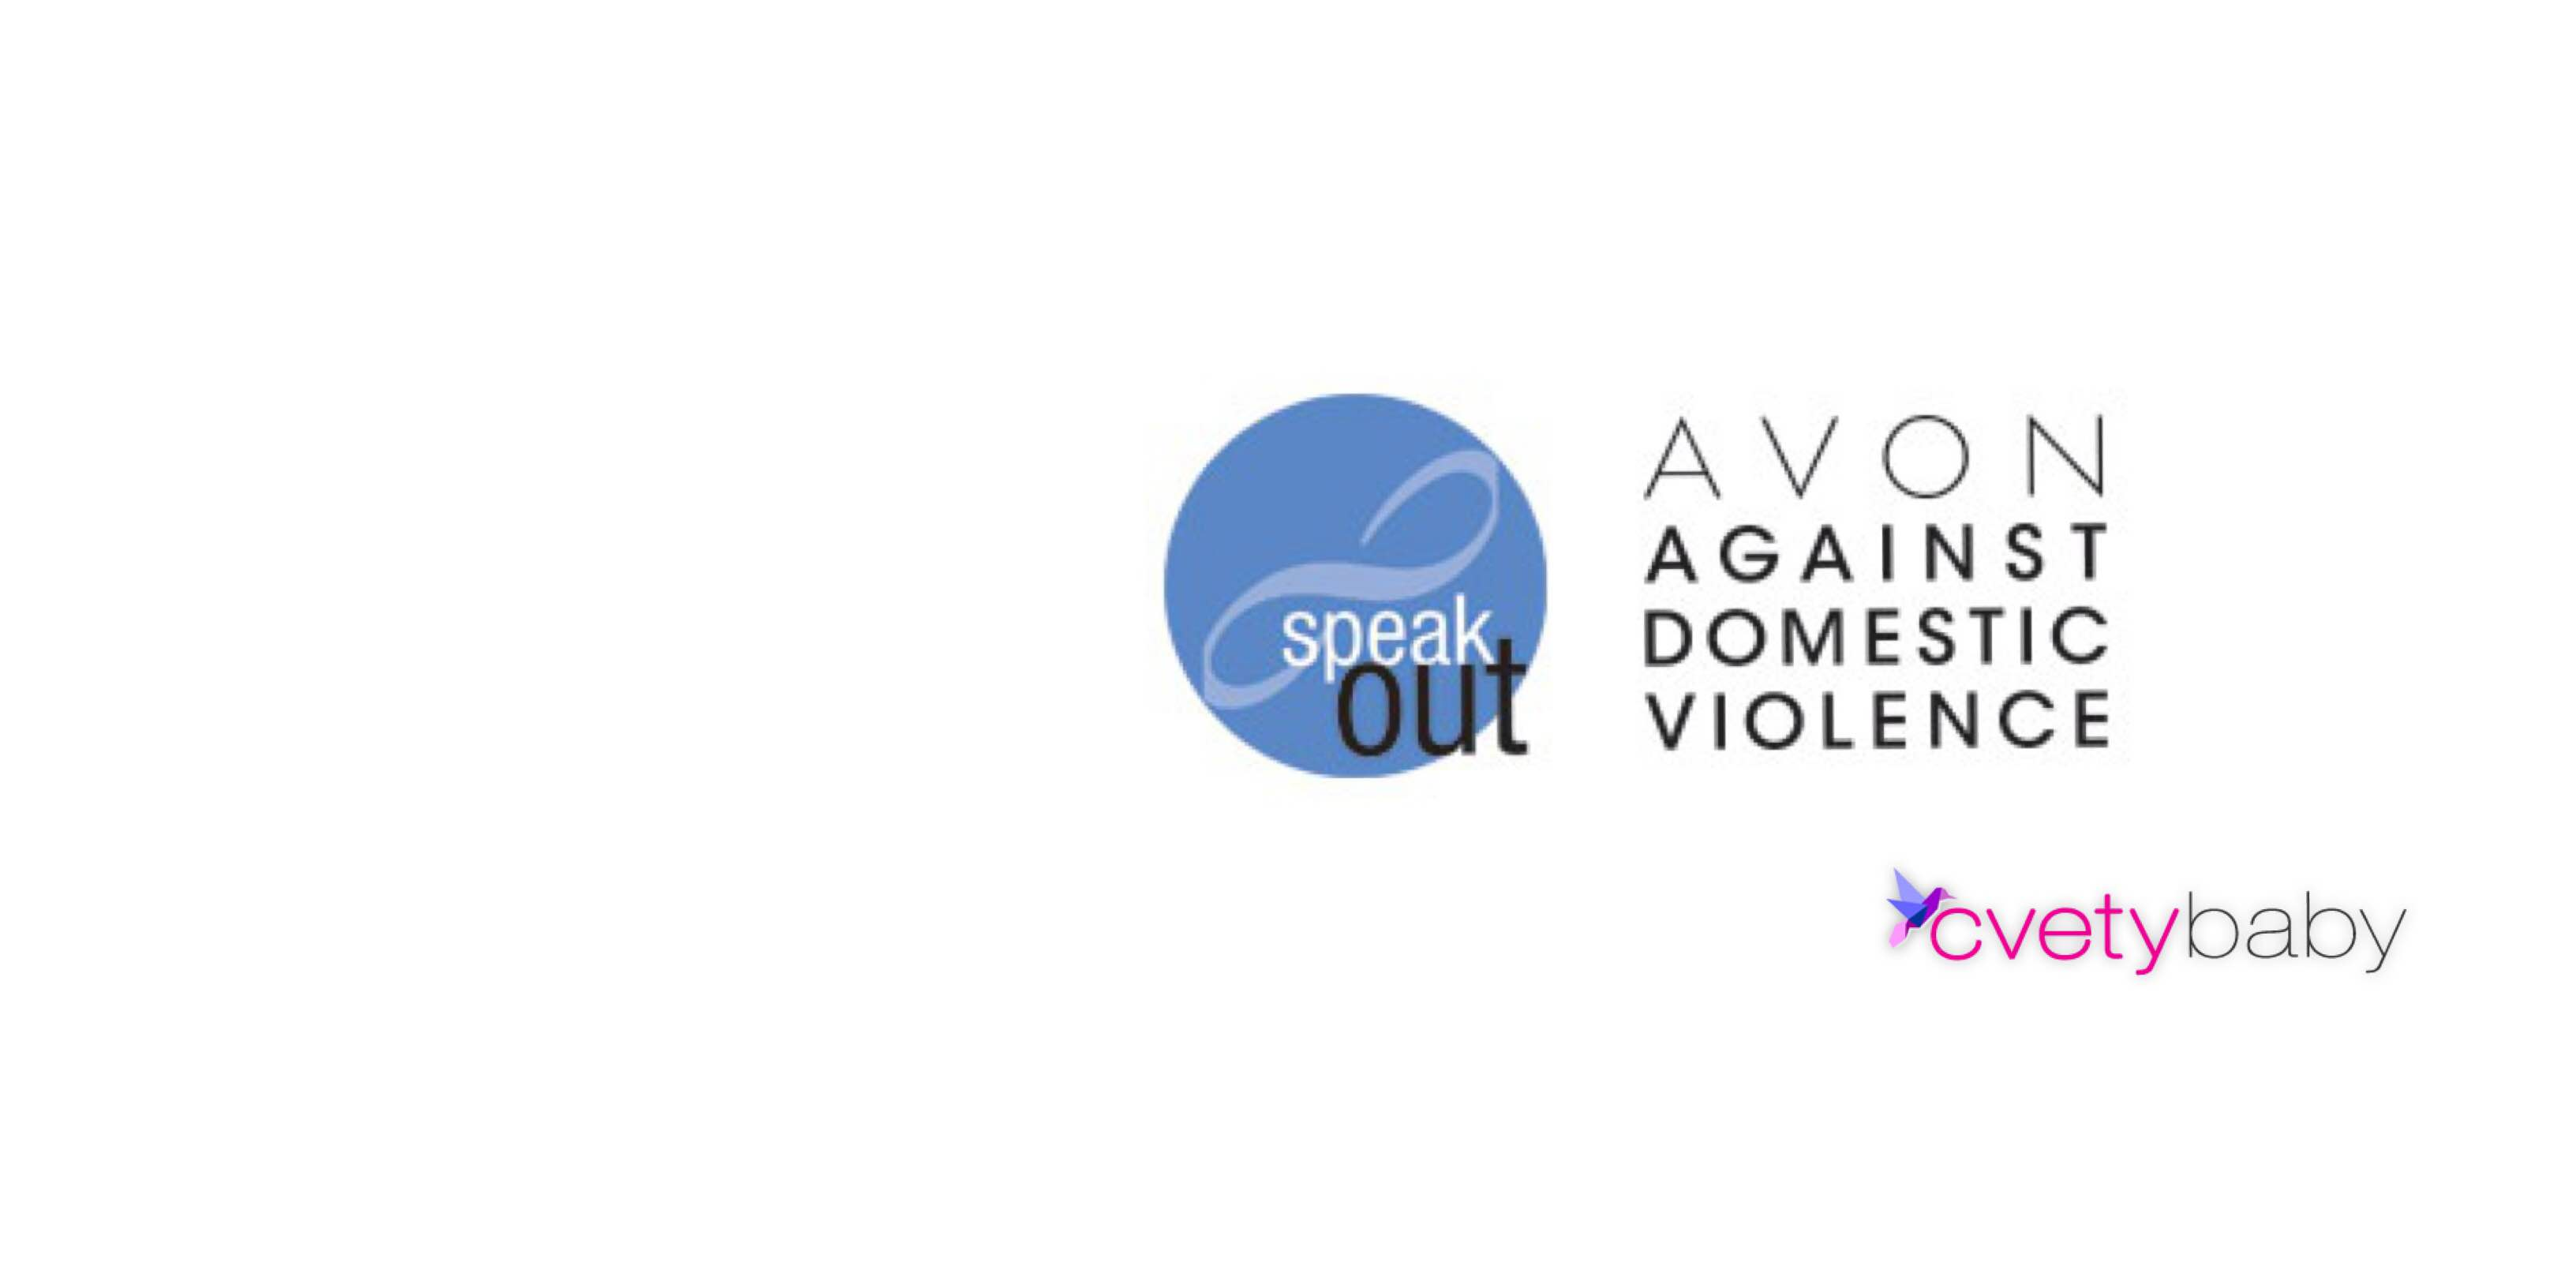 Avon against domestic violence and cvetybaby